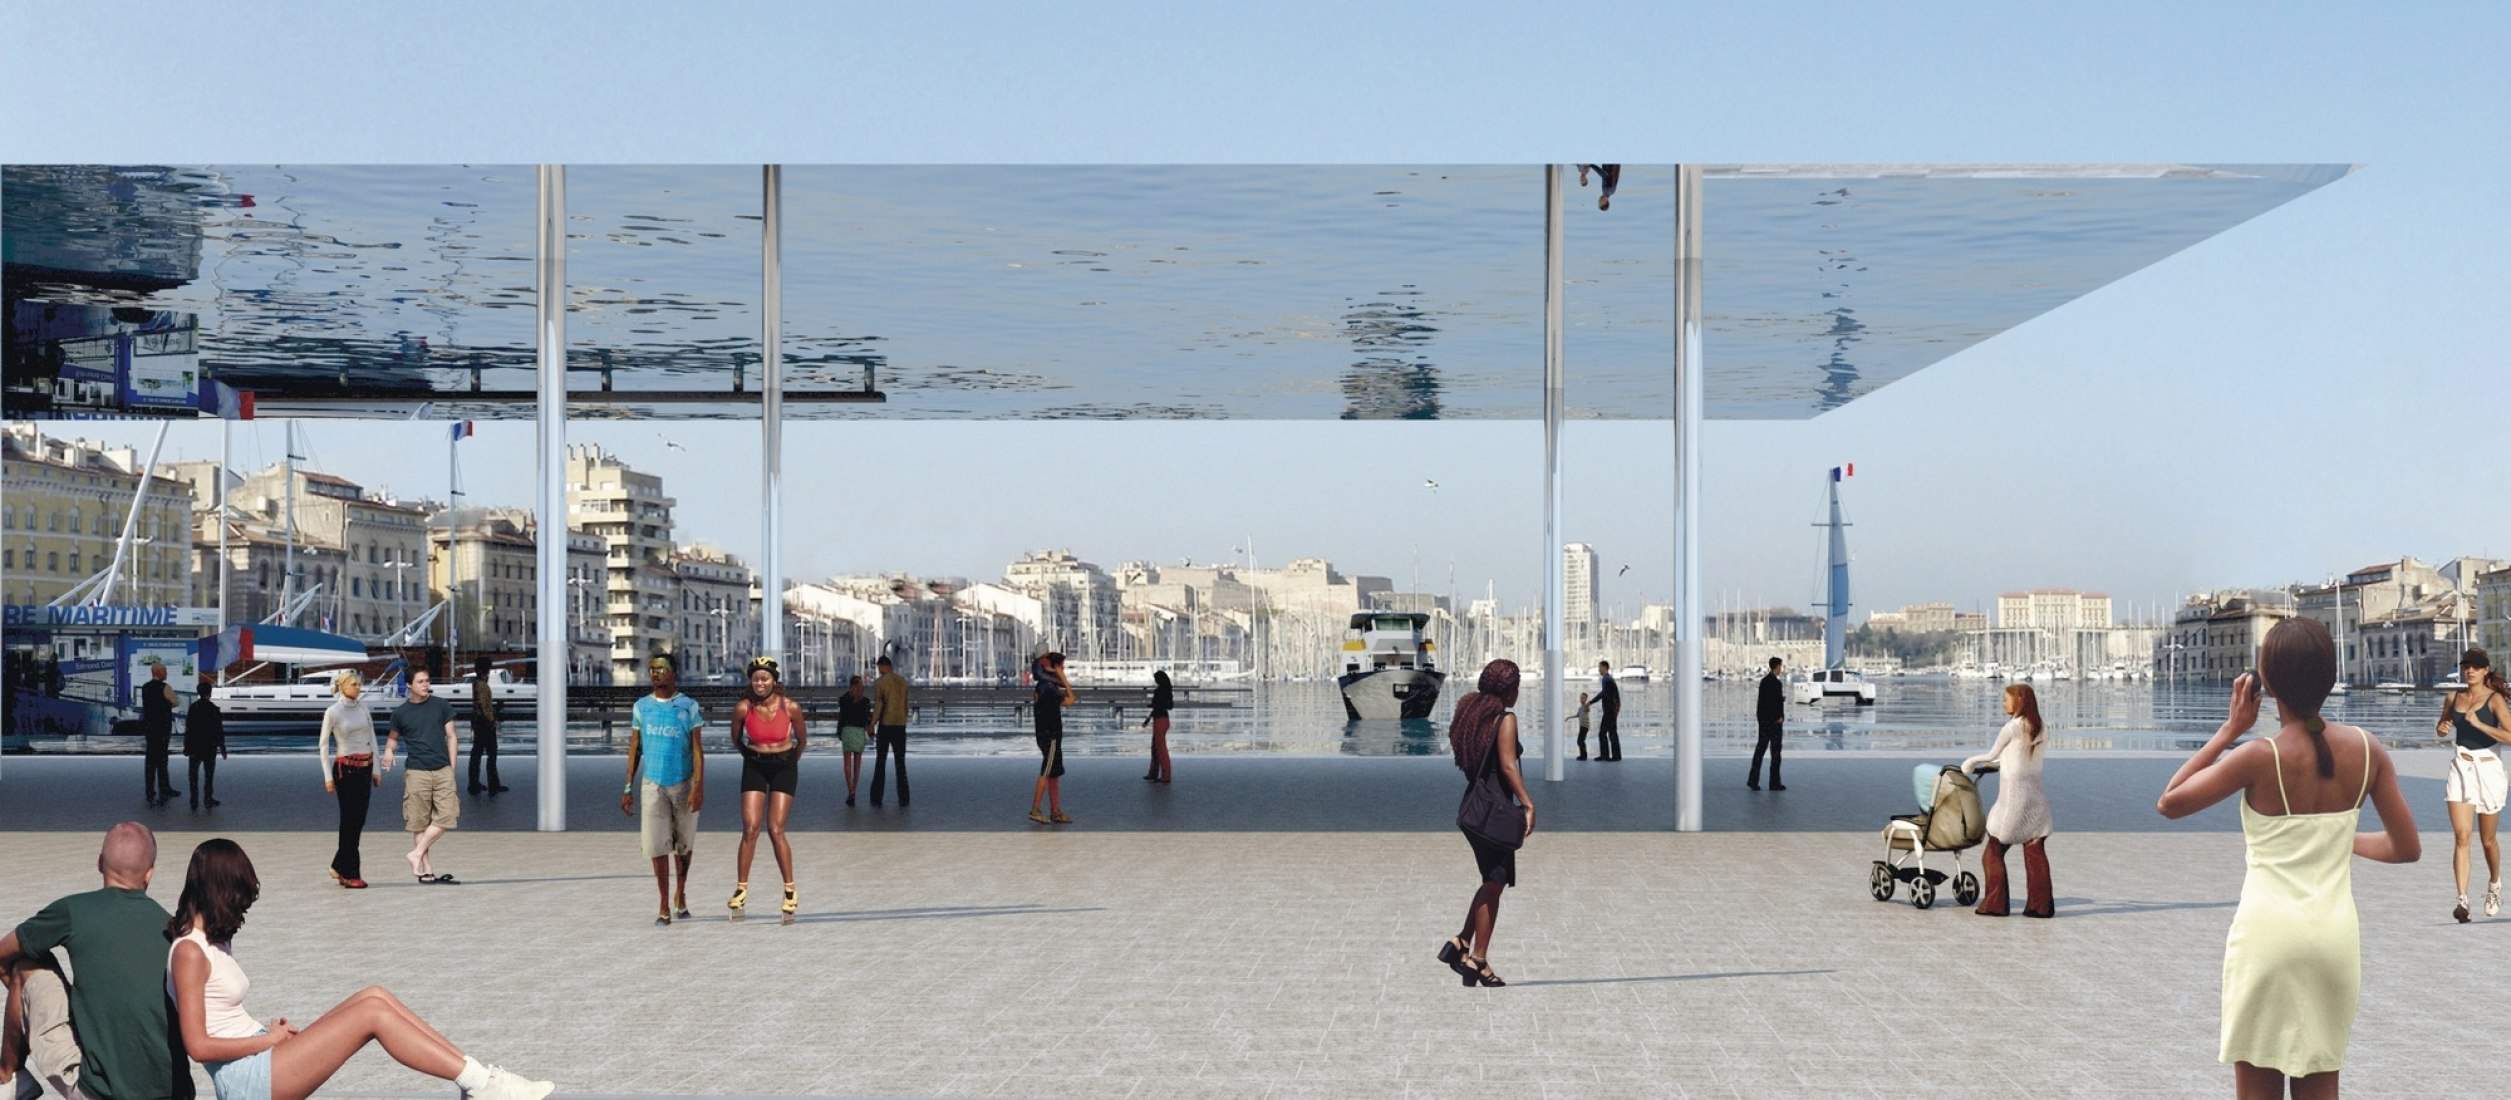 Rendering project. New Vieux Port pavilion by Foster + Partners.